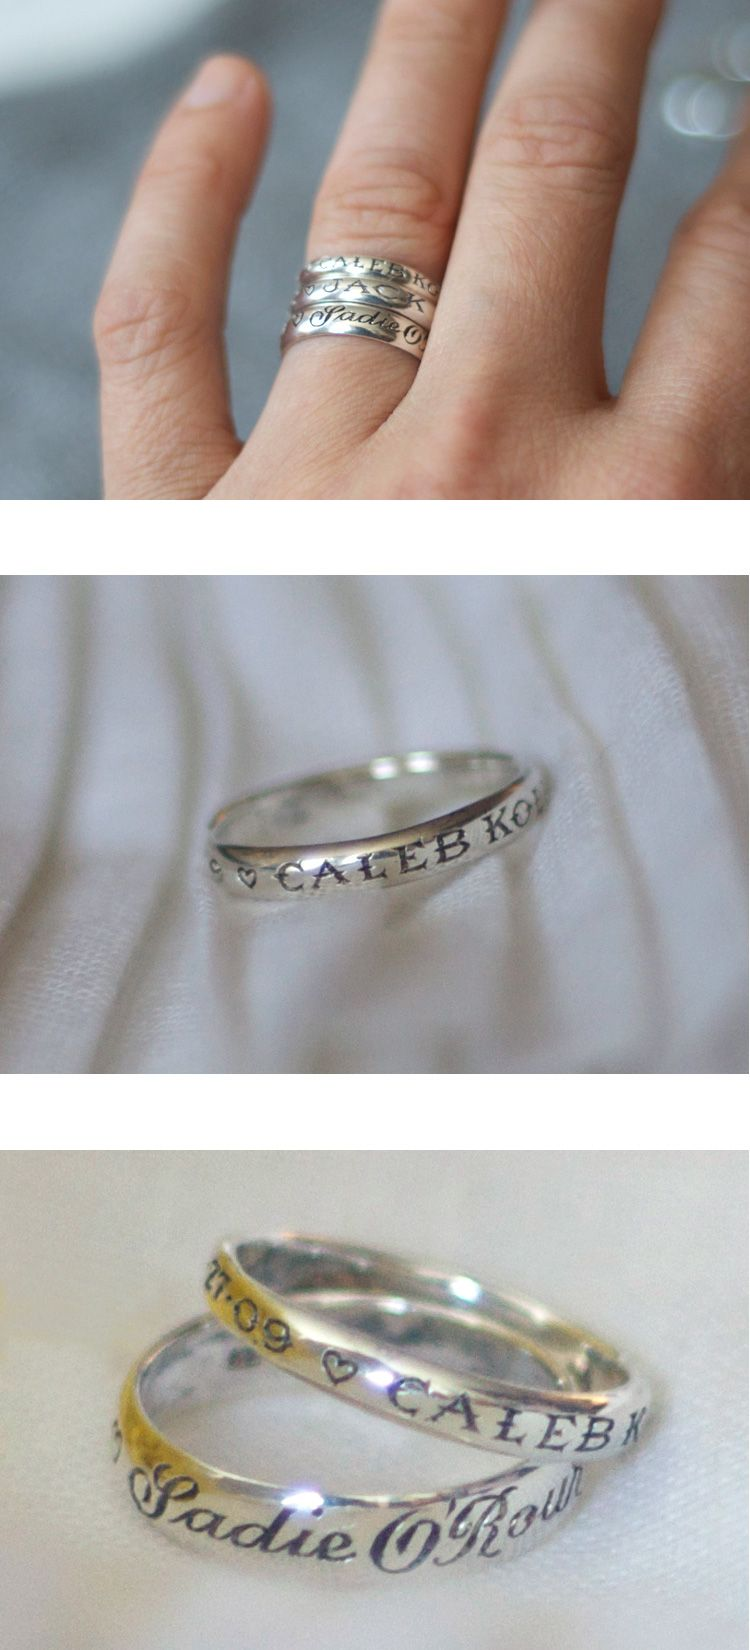 Child's name and date of birth on the ring. Wow, I want!